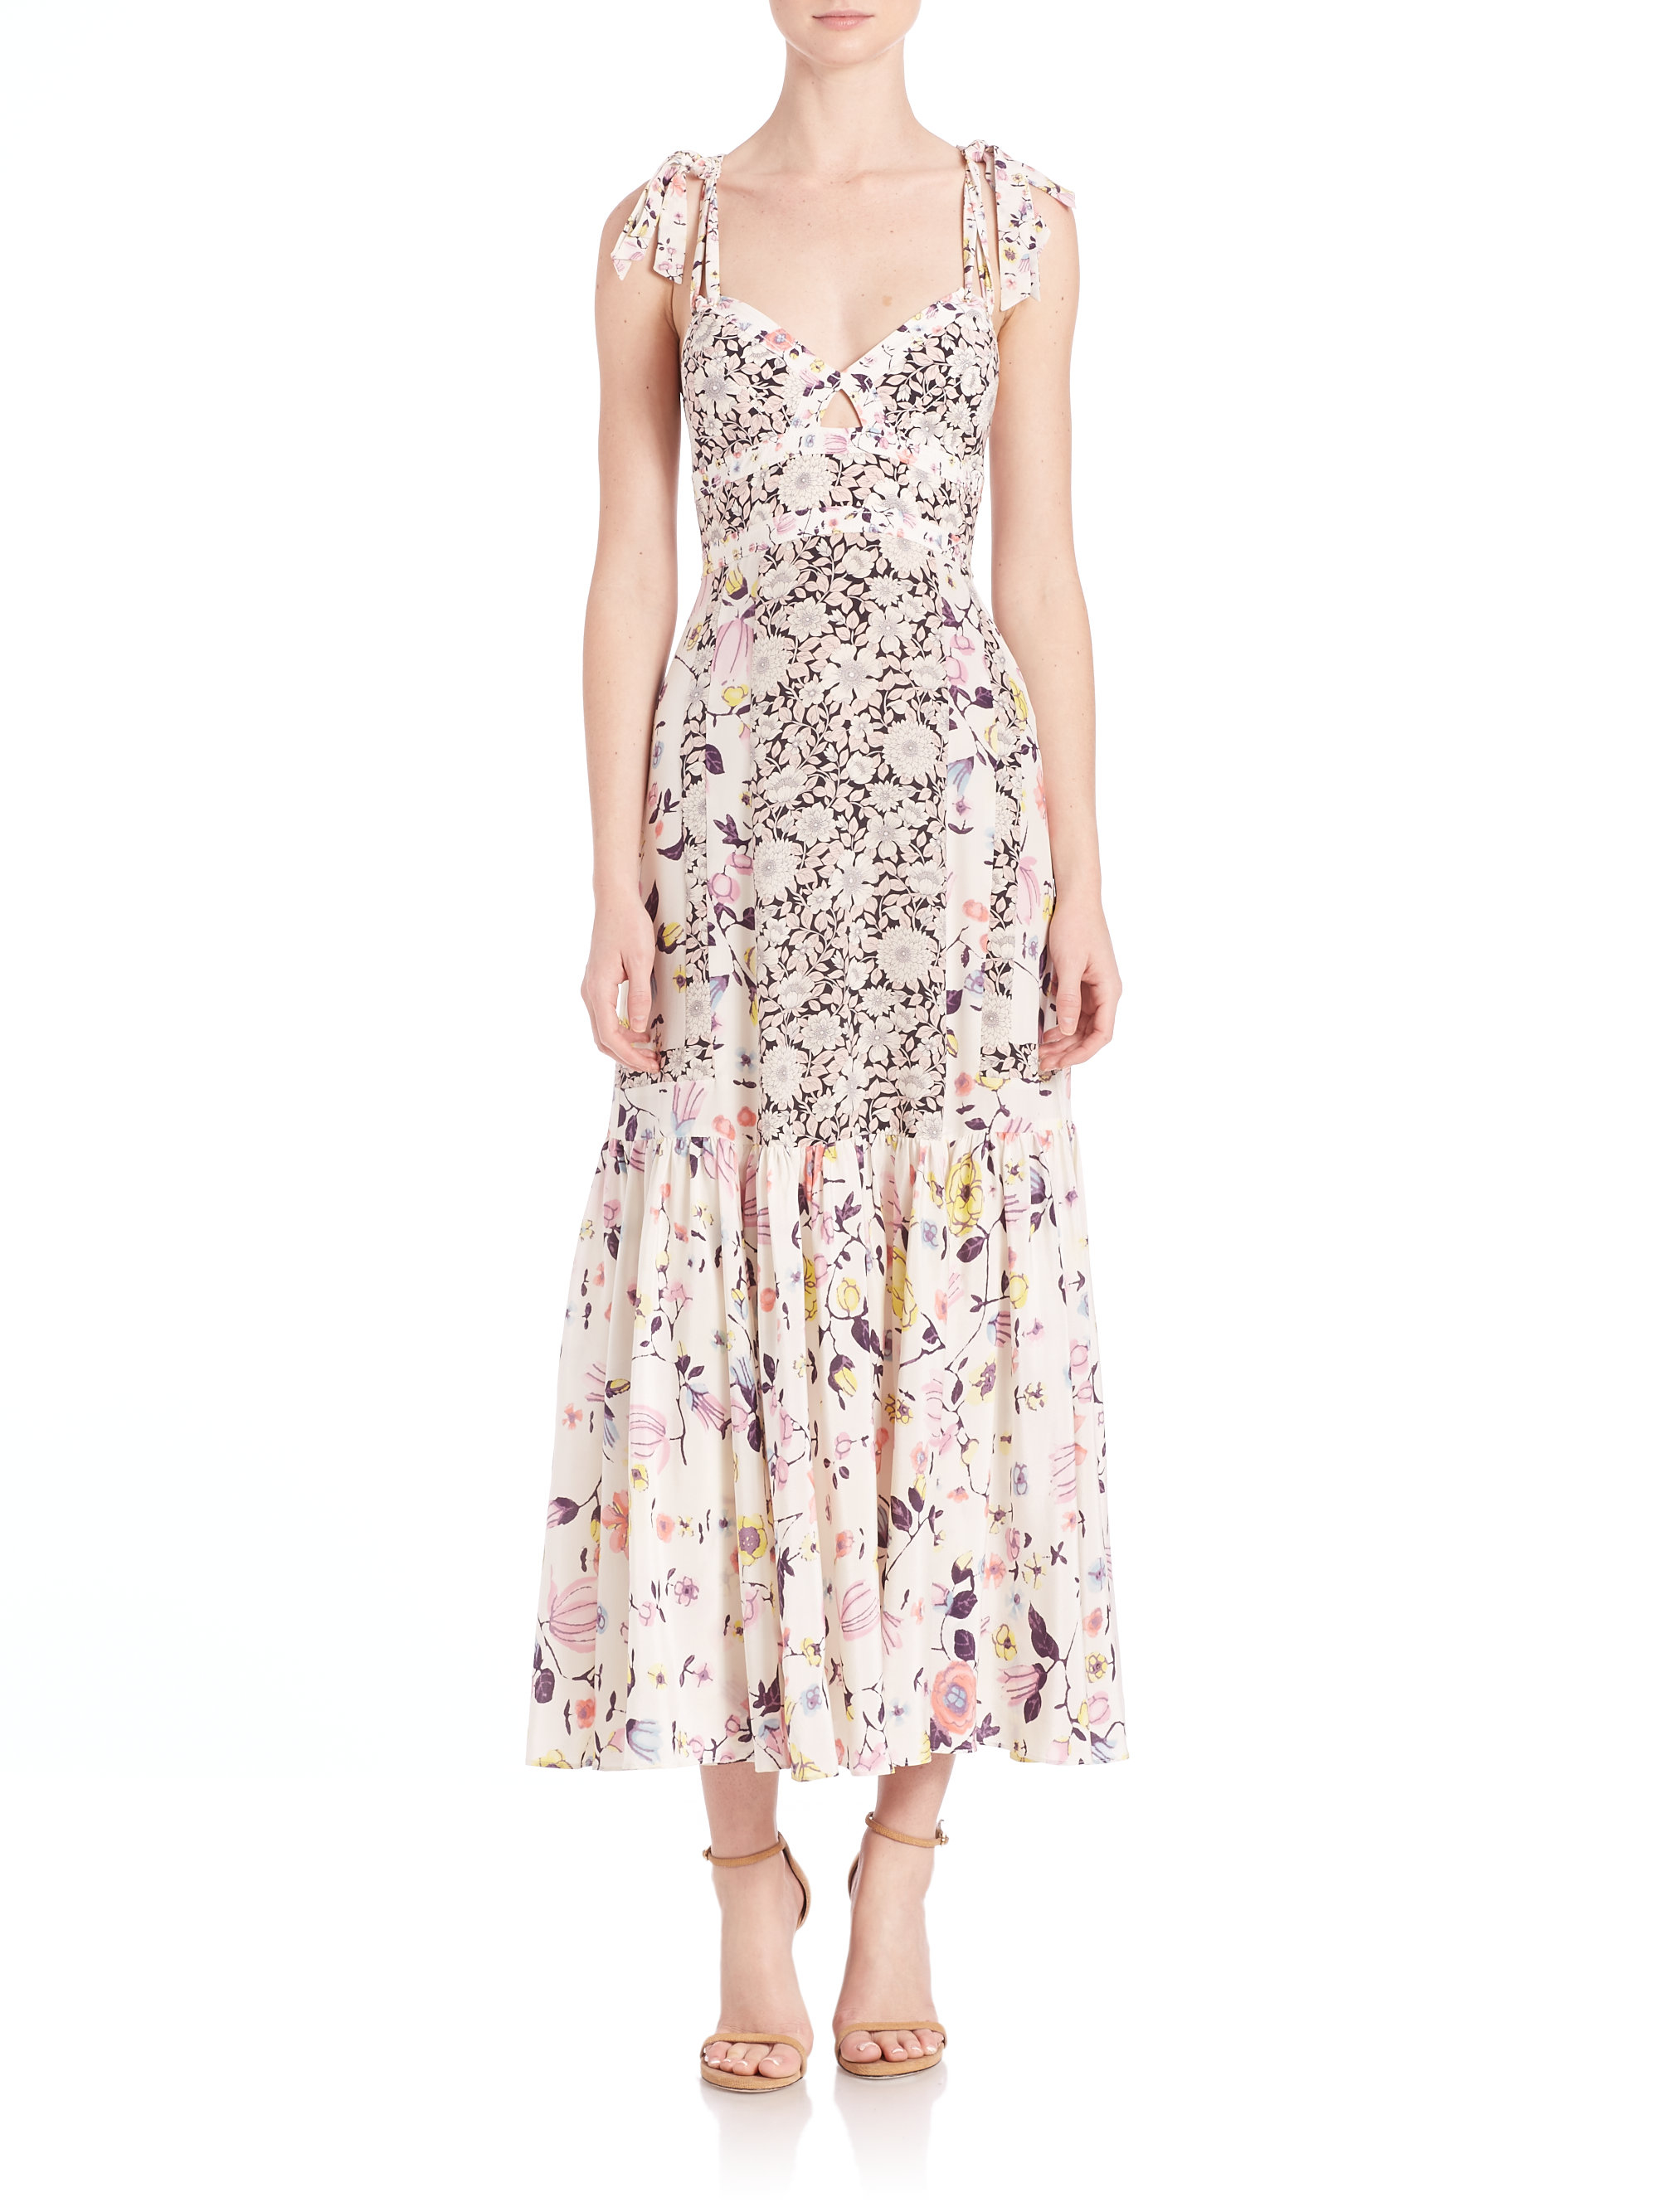 Floral-print crepe midi dress Rebecca Taylor Footlocker Finishline Cheap Price Cheap Sale 2018 New Outlet Collections Shop For Sale Online tM6MoD84